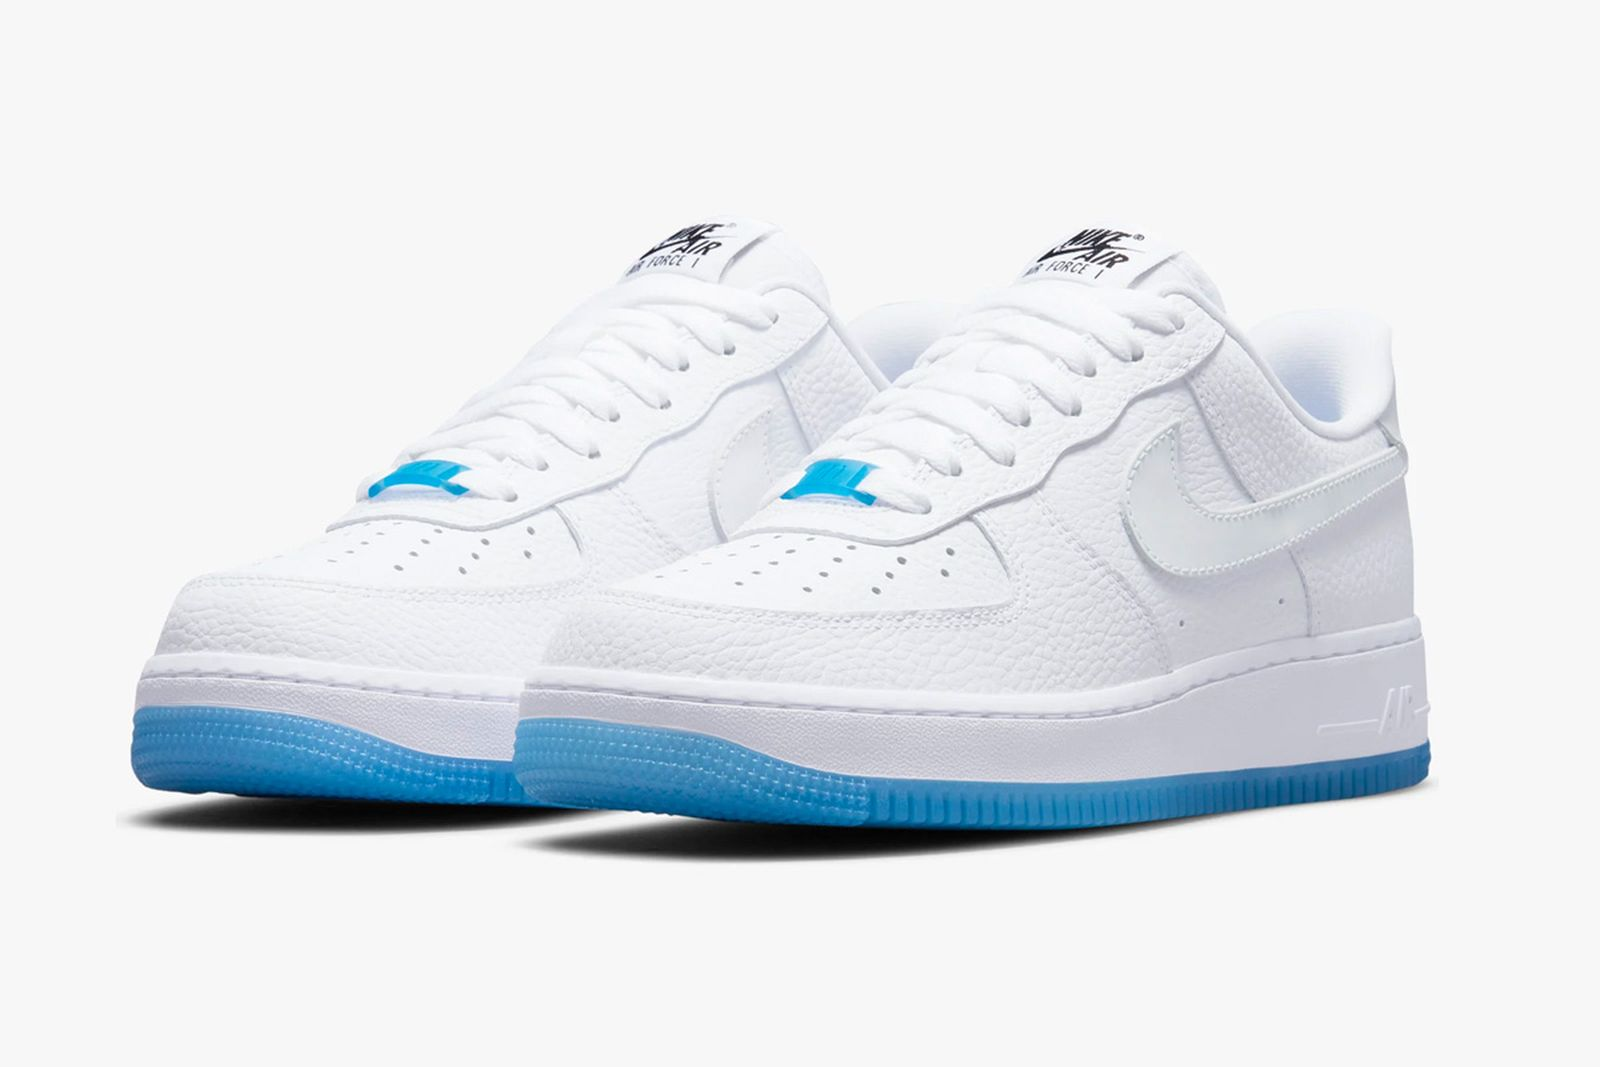 nike-air-force-1-air-force-1-07-lx-release-date-info-price-03